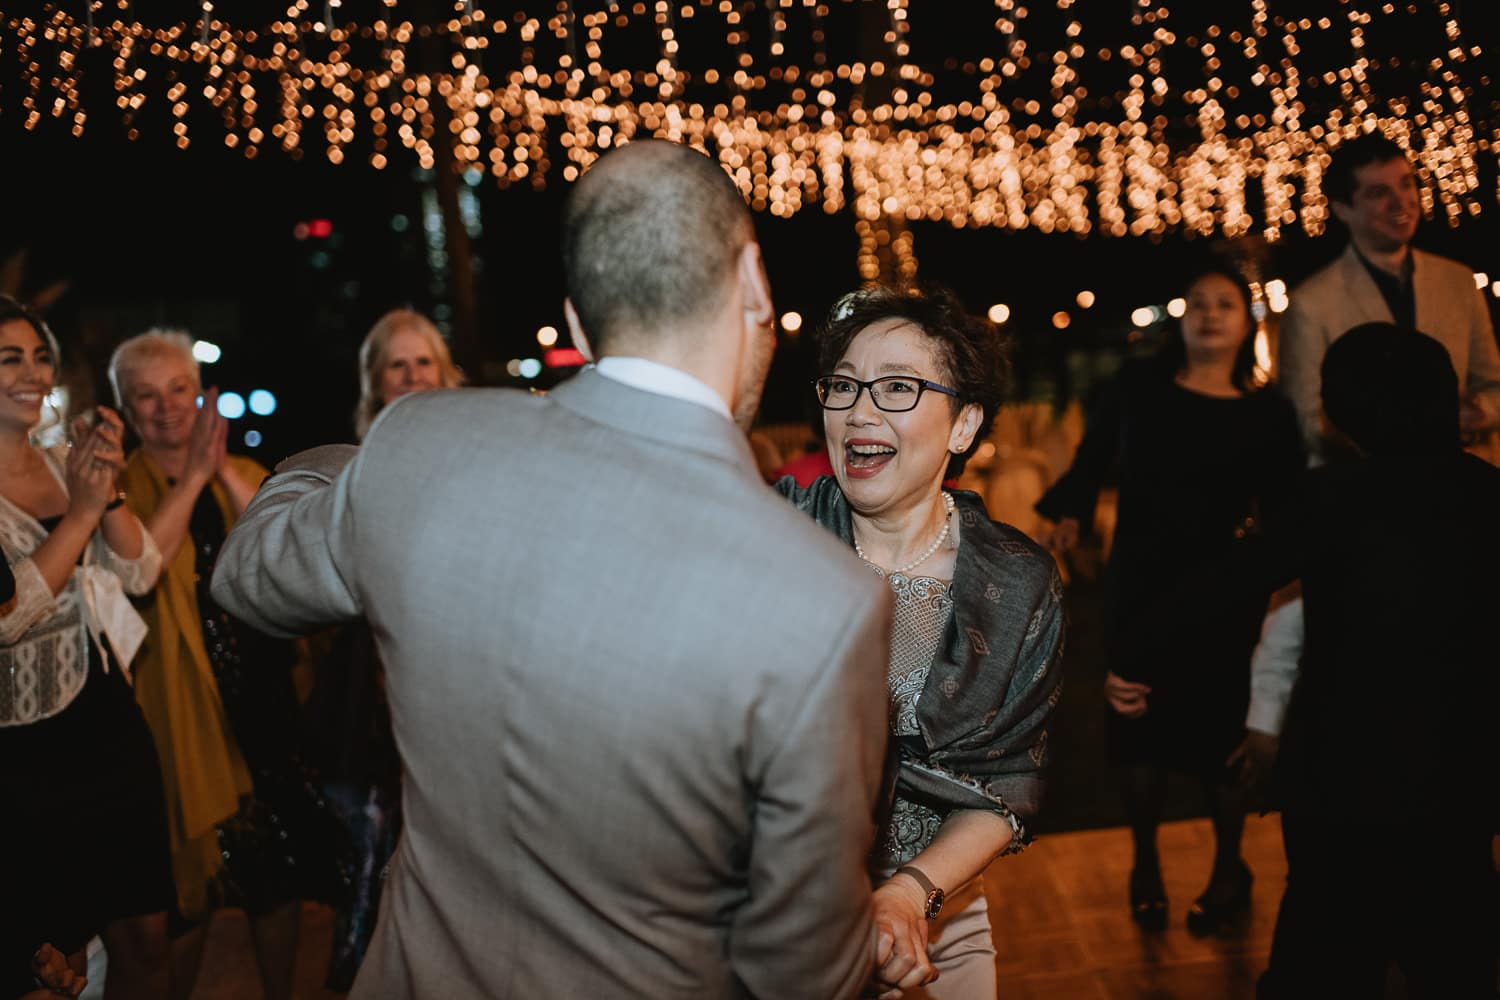 Evening String light Wedding Reception Mother and Groom Dance